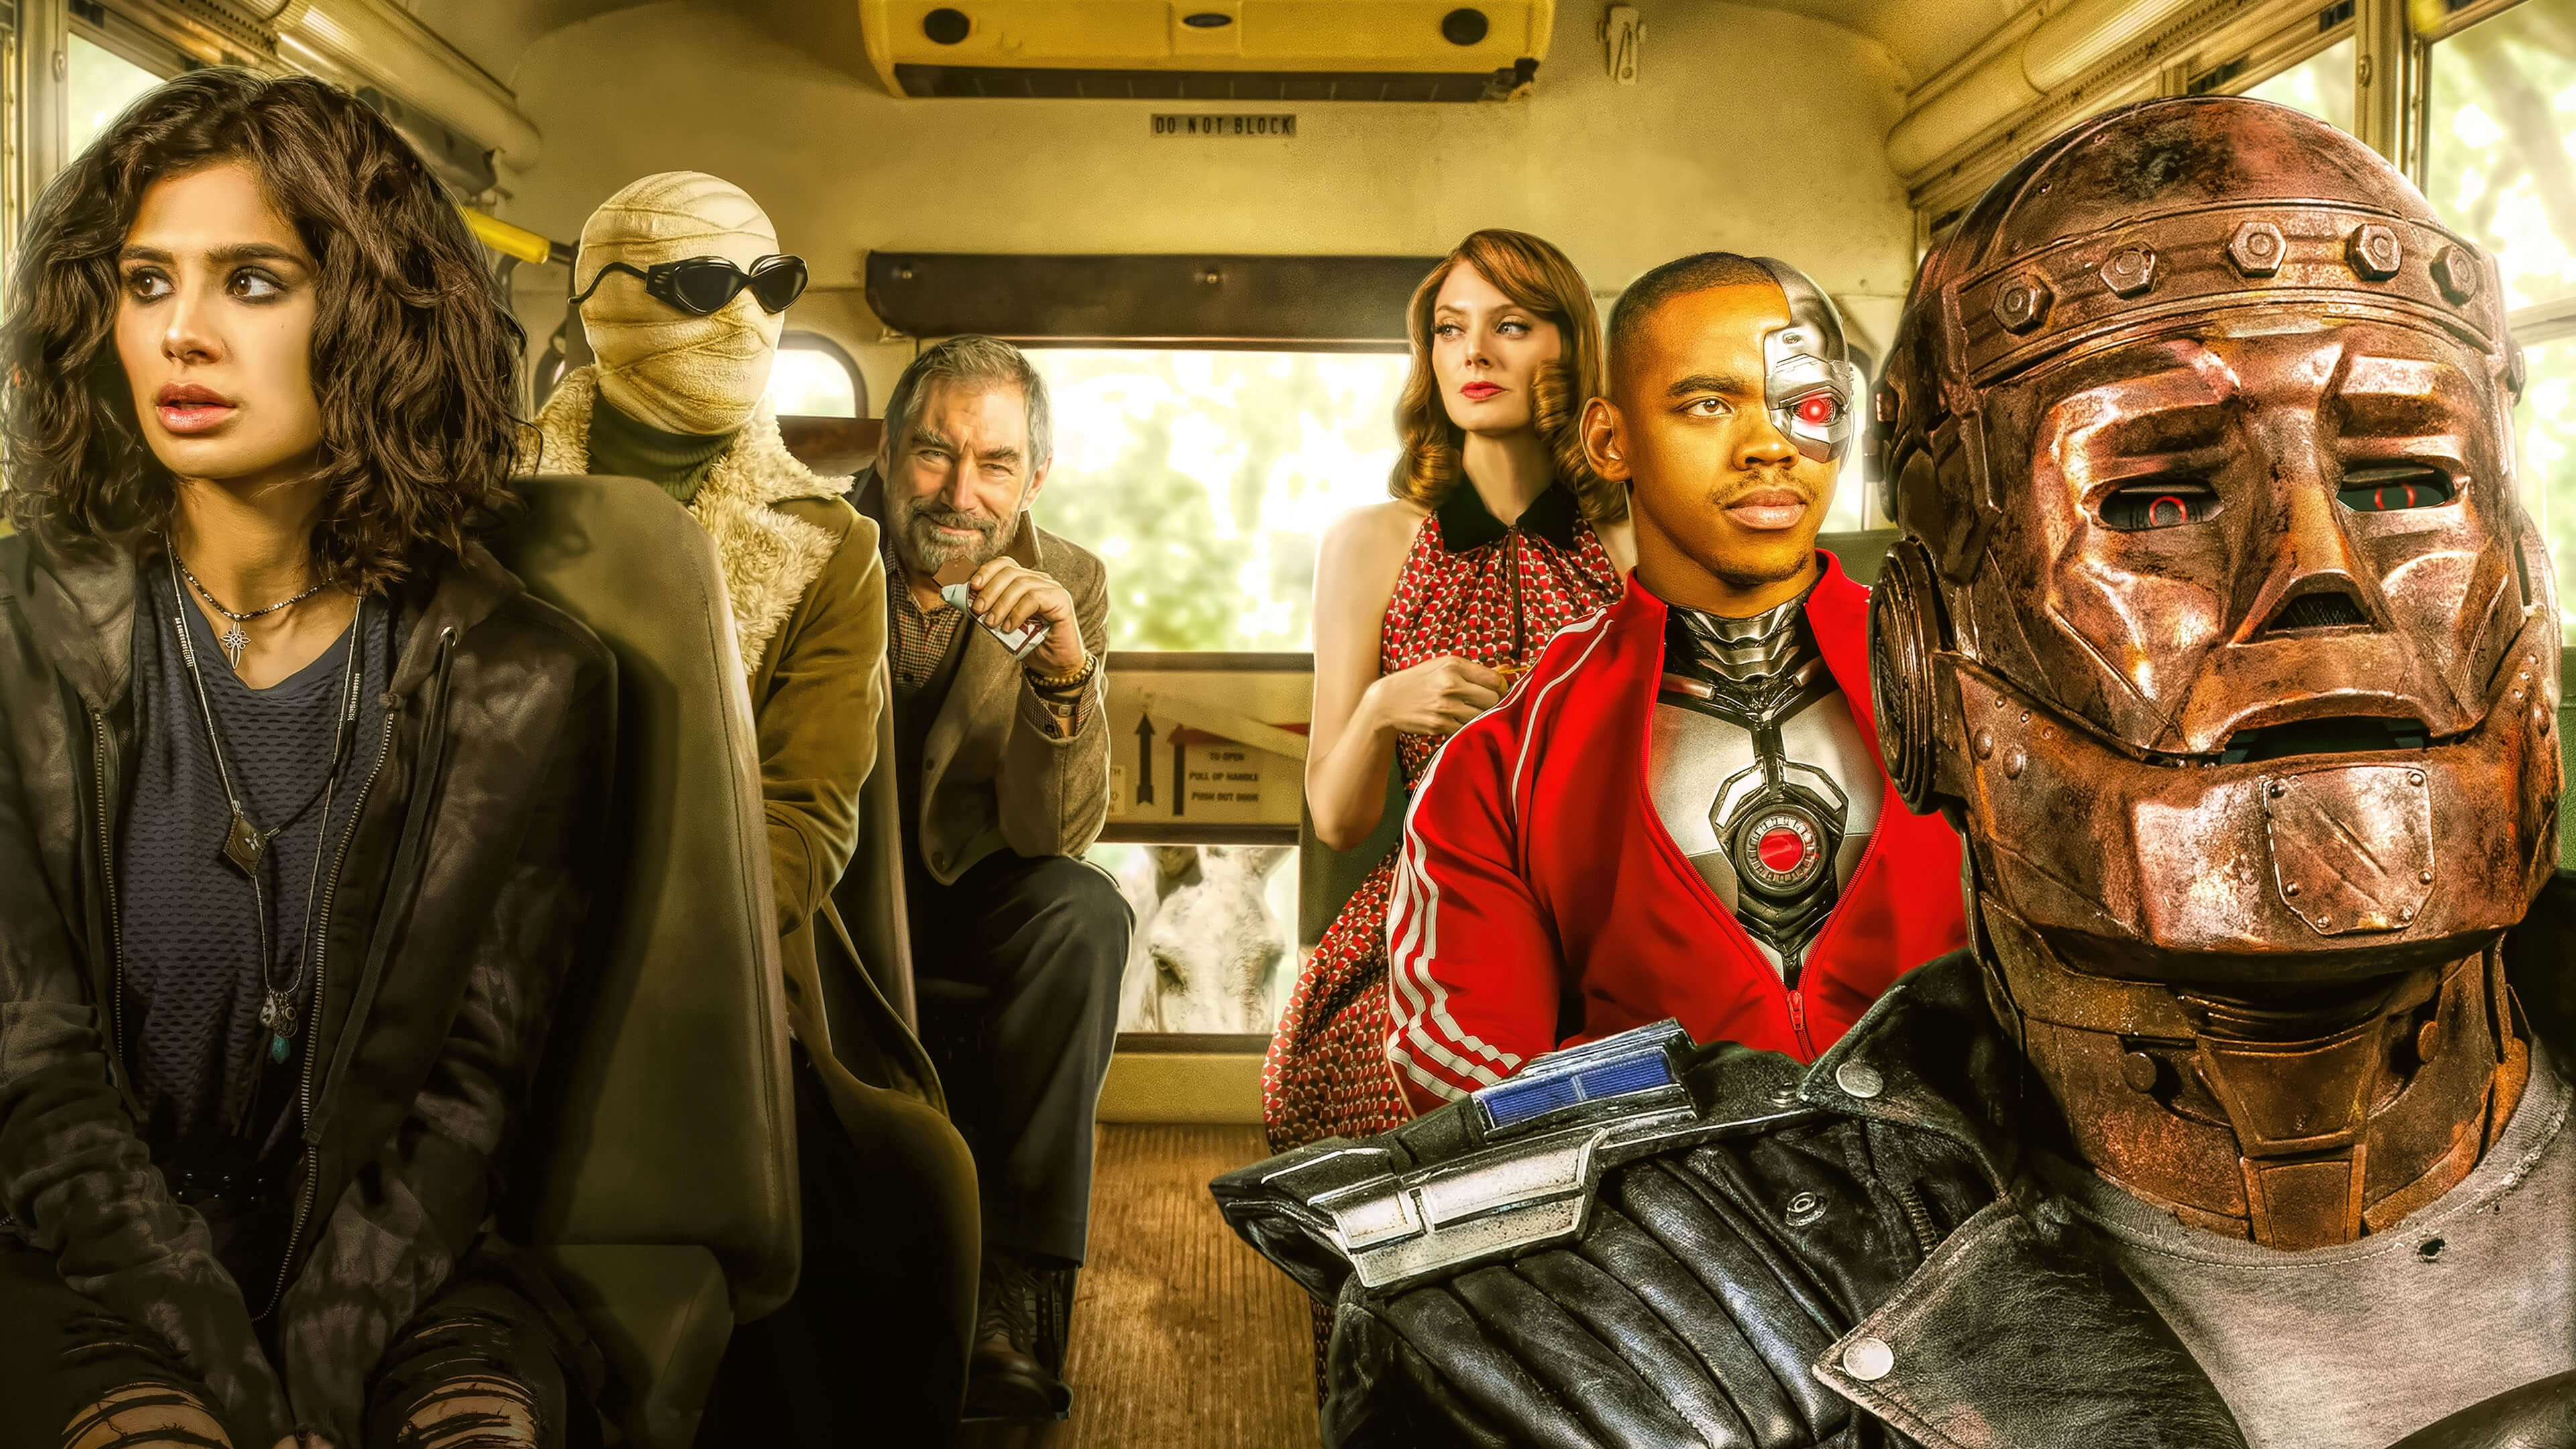 Doom Patrol Season 2 Episode 1 Watch Full Episodes By Doom Patrol S2 E1 Fun Size Patrol Jun 2020 Medium